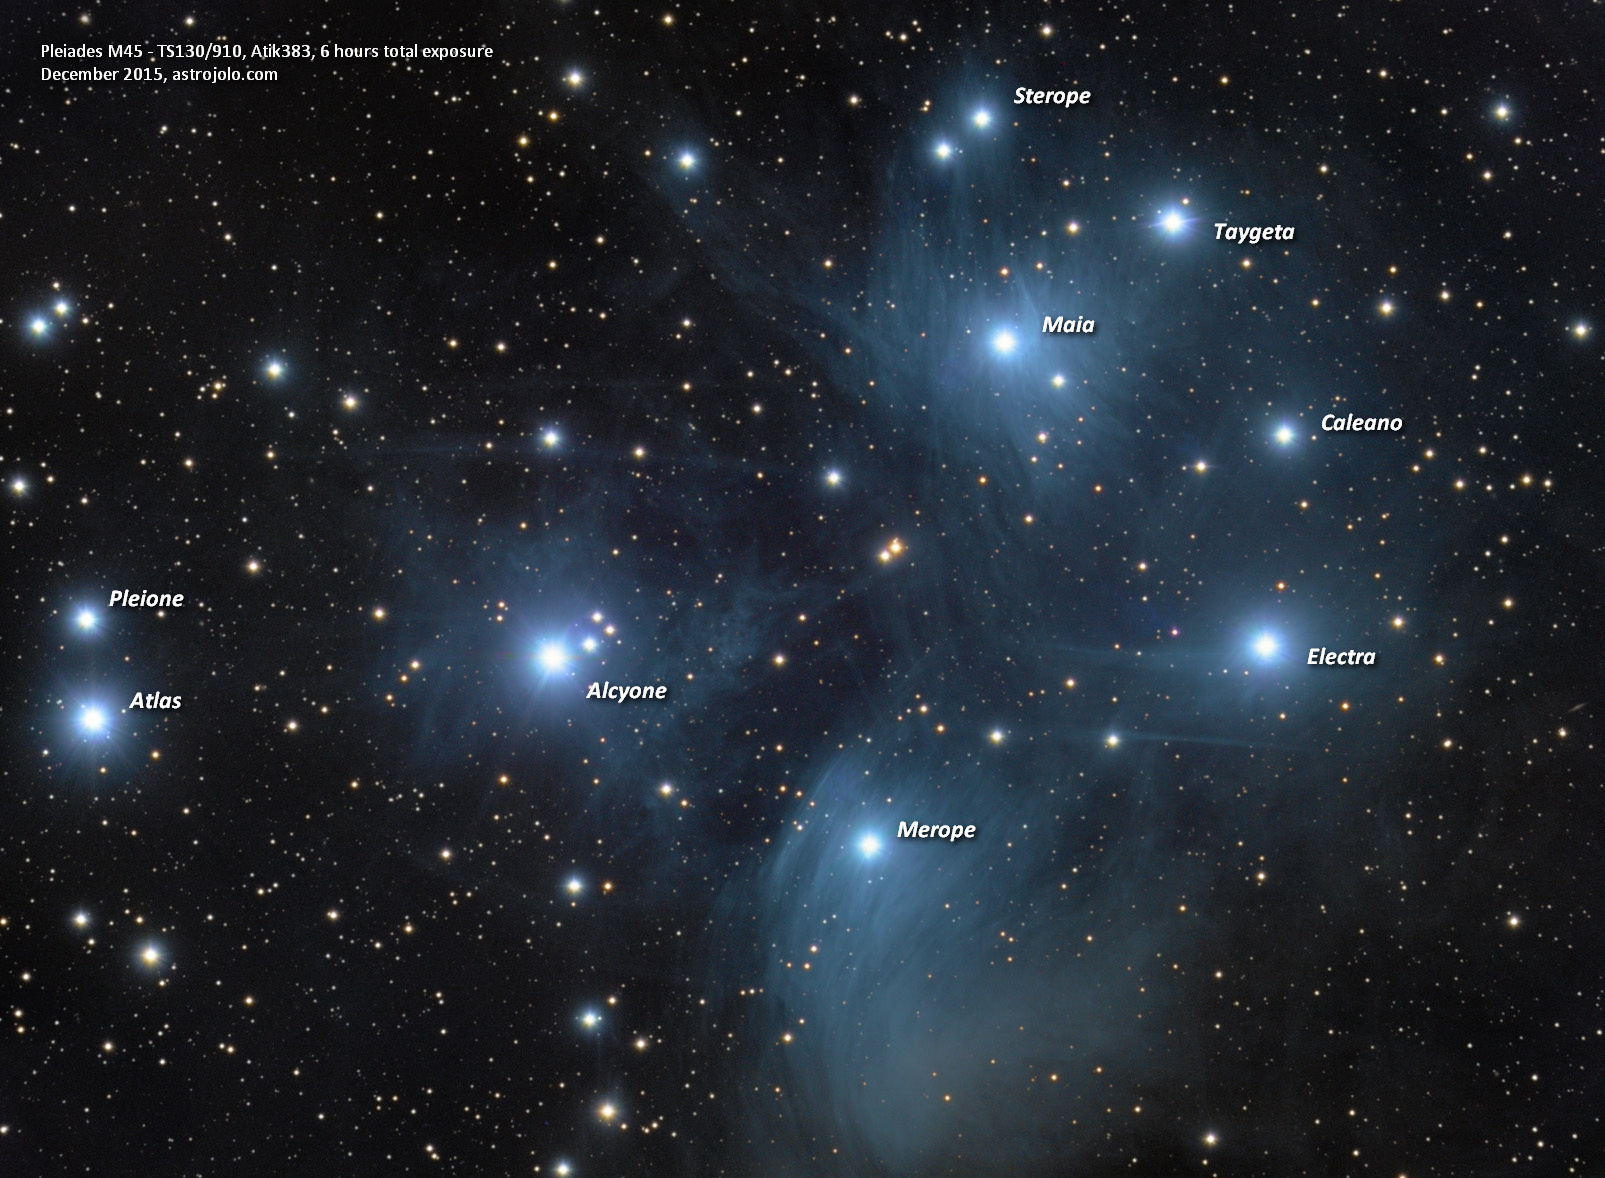 Plaiedes - annotated image